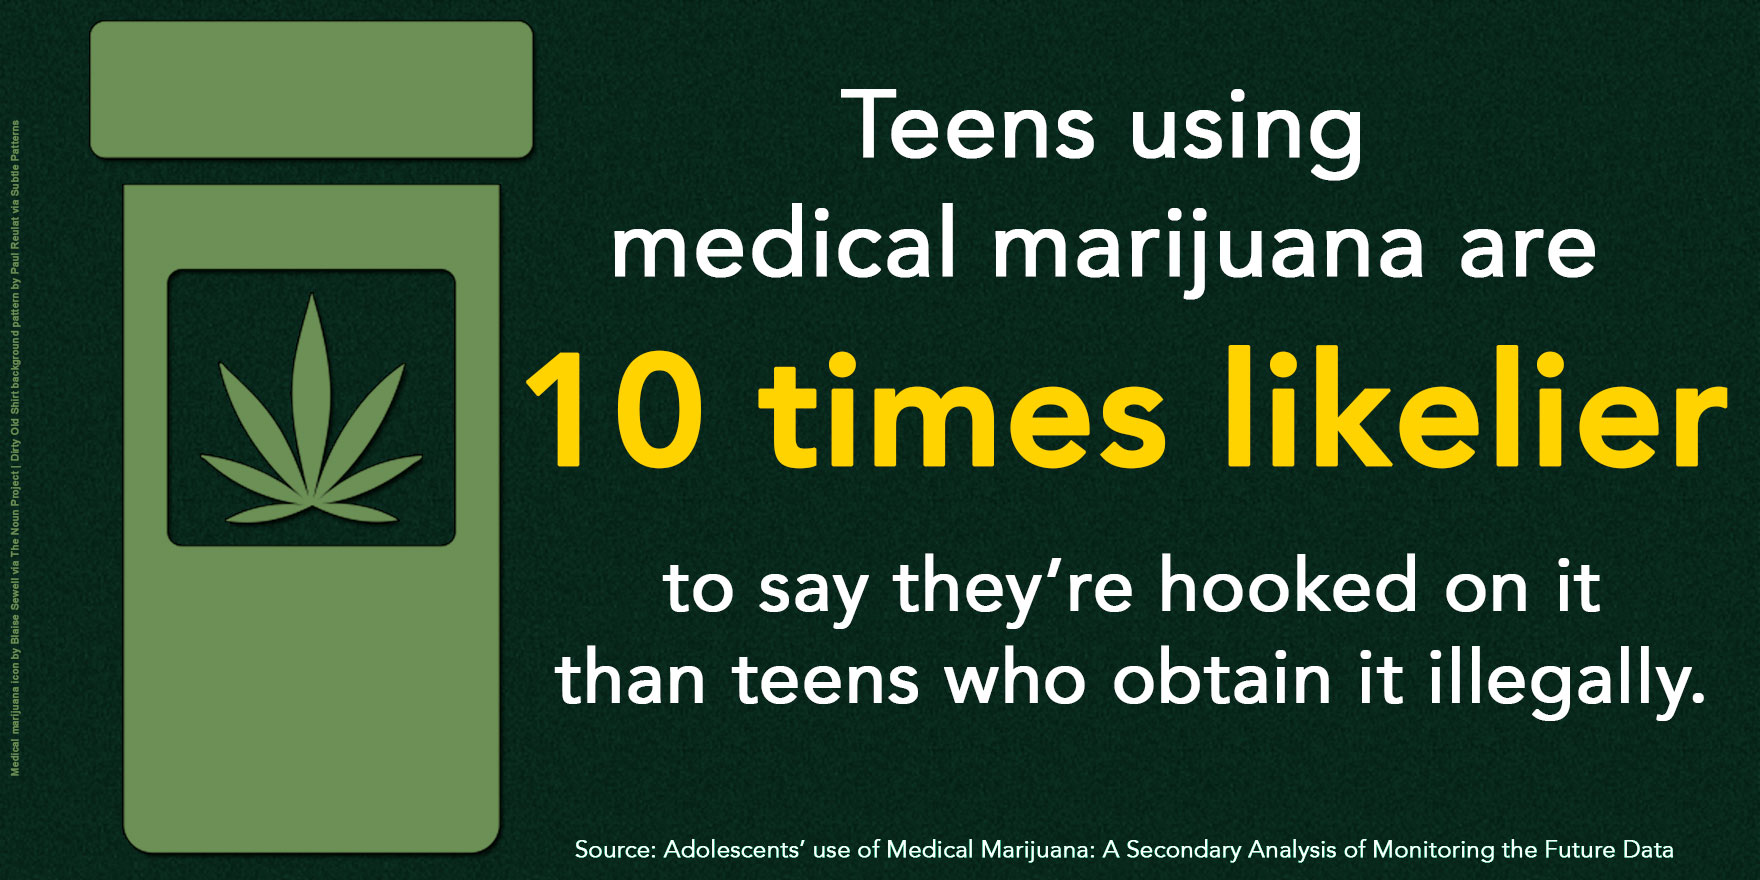 Teens using medical marijuana are 10 times more likely to say they are hooked on marijuana than youth who get marijuana illegally.